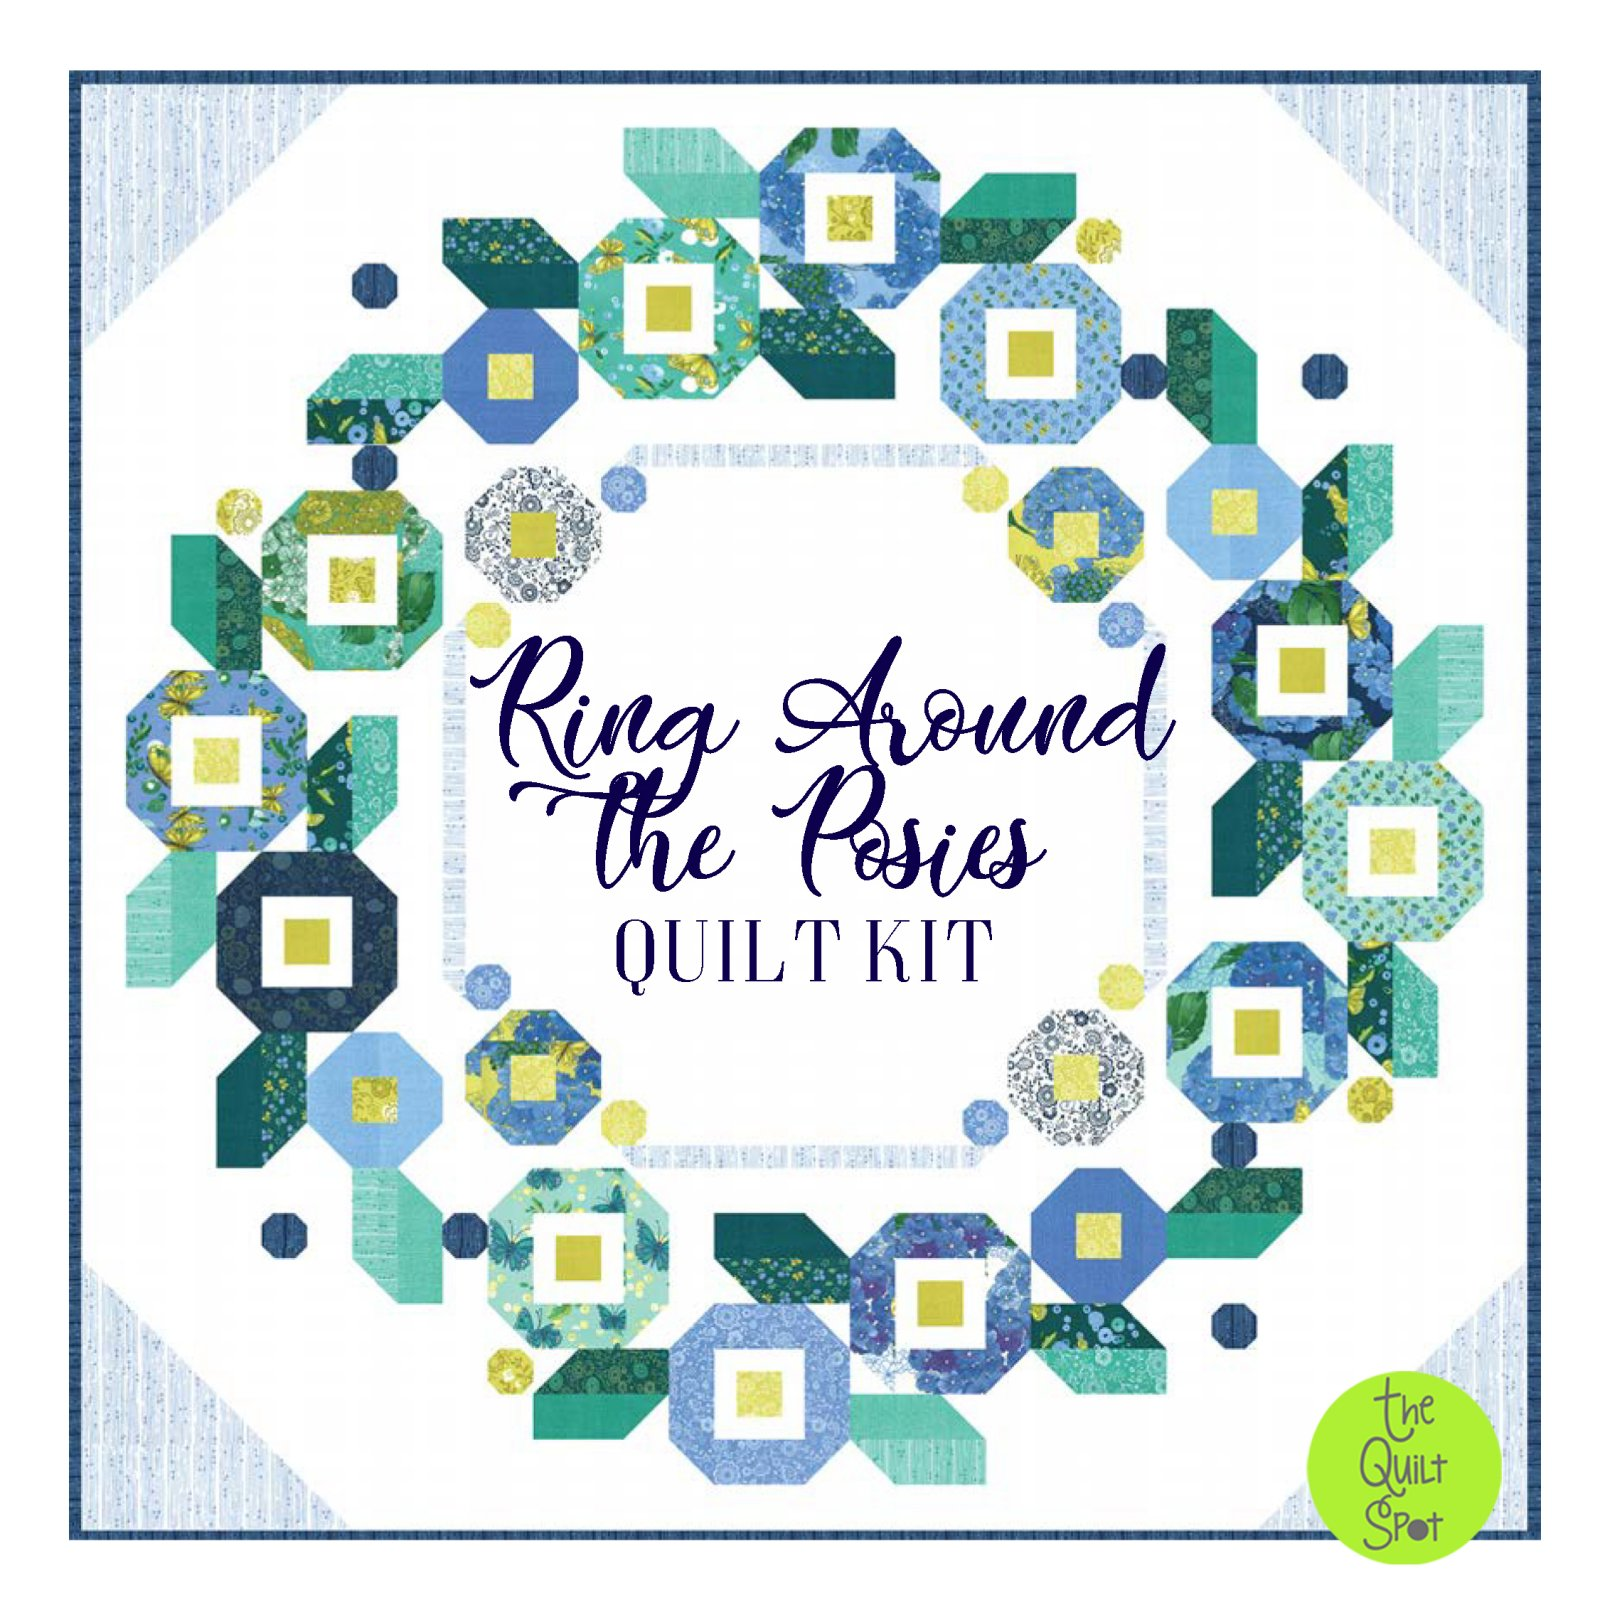 Ring Around the Posies Quilt Kit featuring Cottage Bleu Fabrics by Robin Pickens